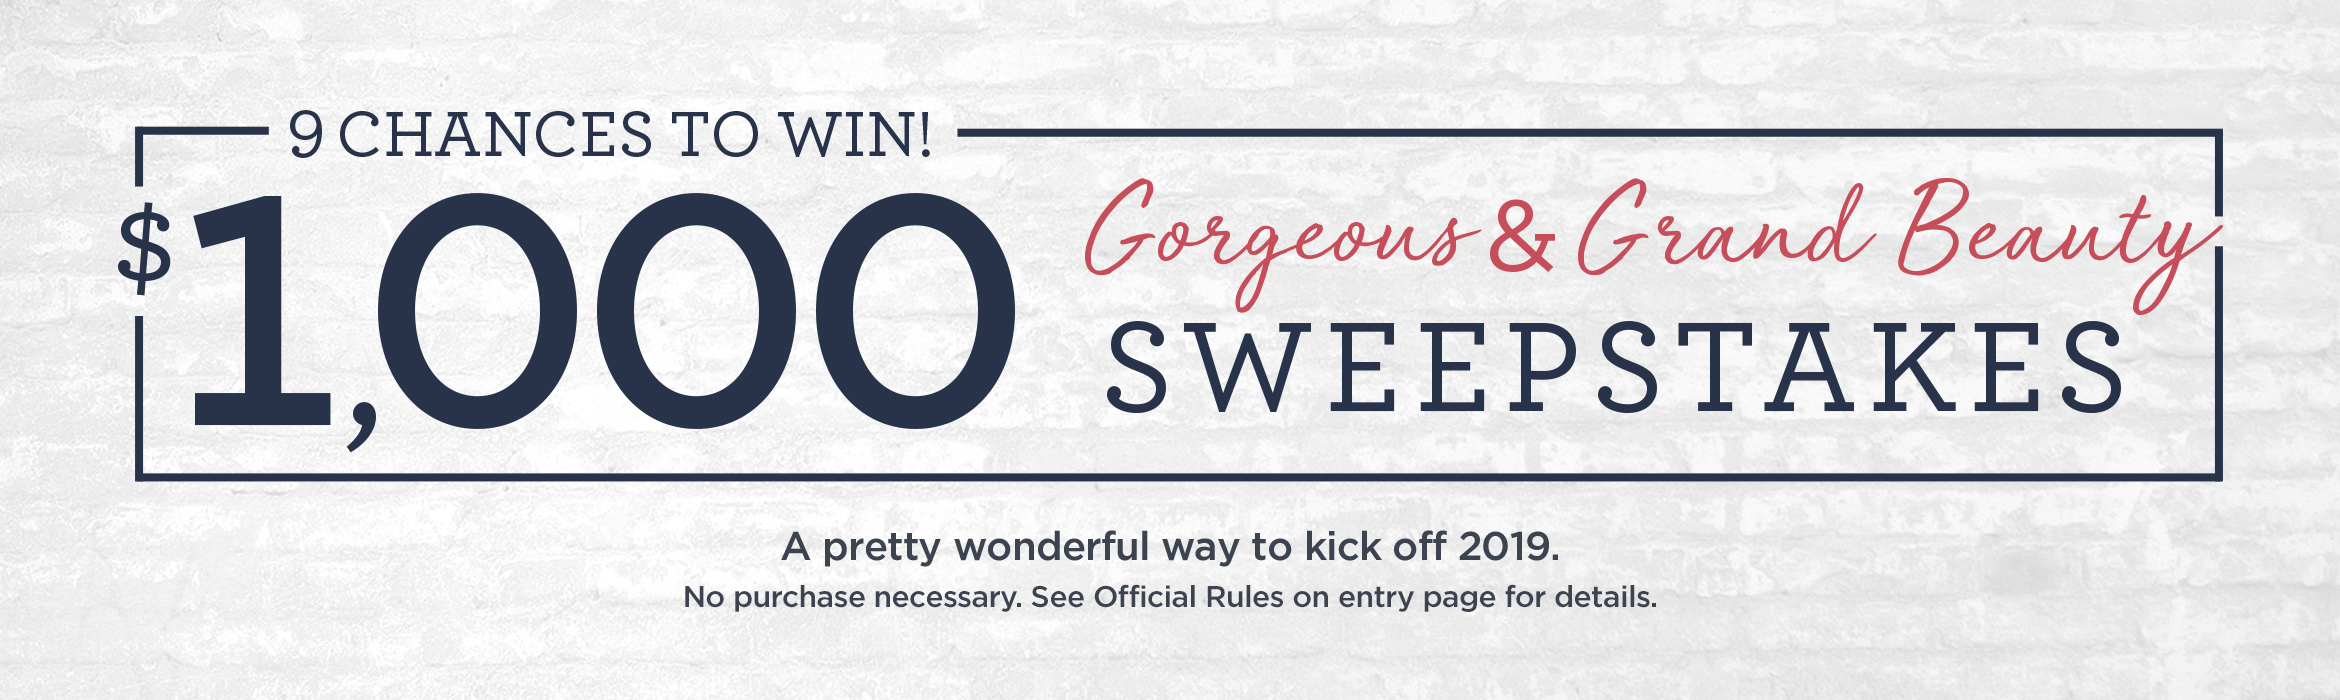 9 Chances to Win! $1,000. Gorgeous & Grand Beauty Sweepstakes. A pretty wonderful way to kick off 2019. No purchase necessary. See Official Rules on entry page for details.